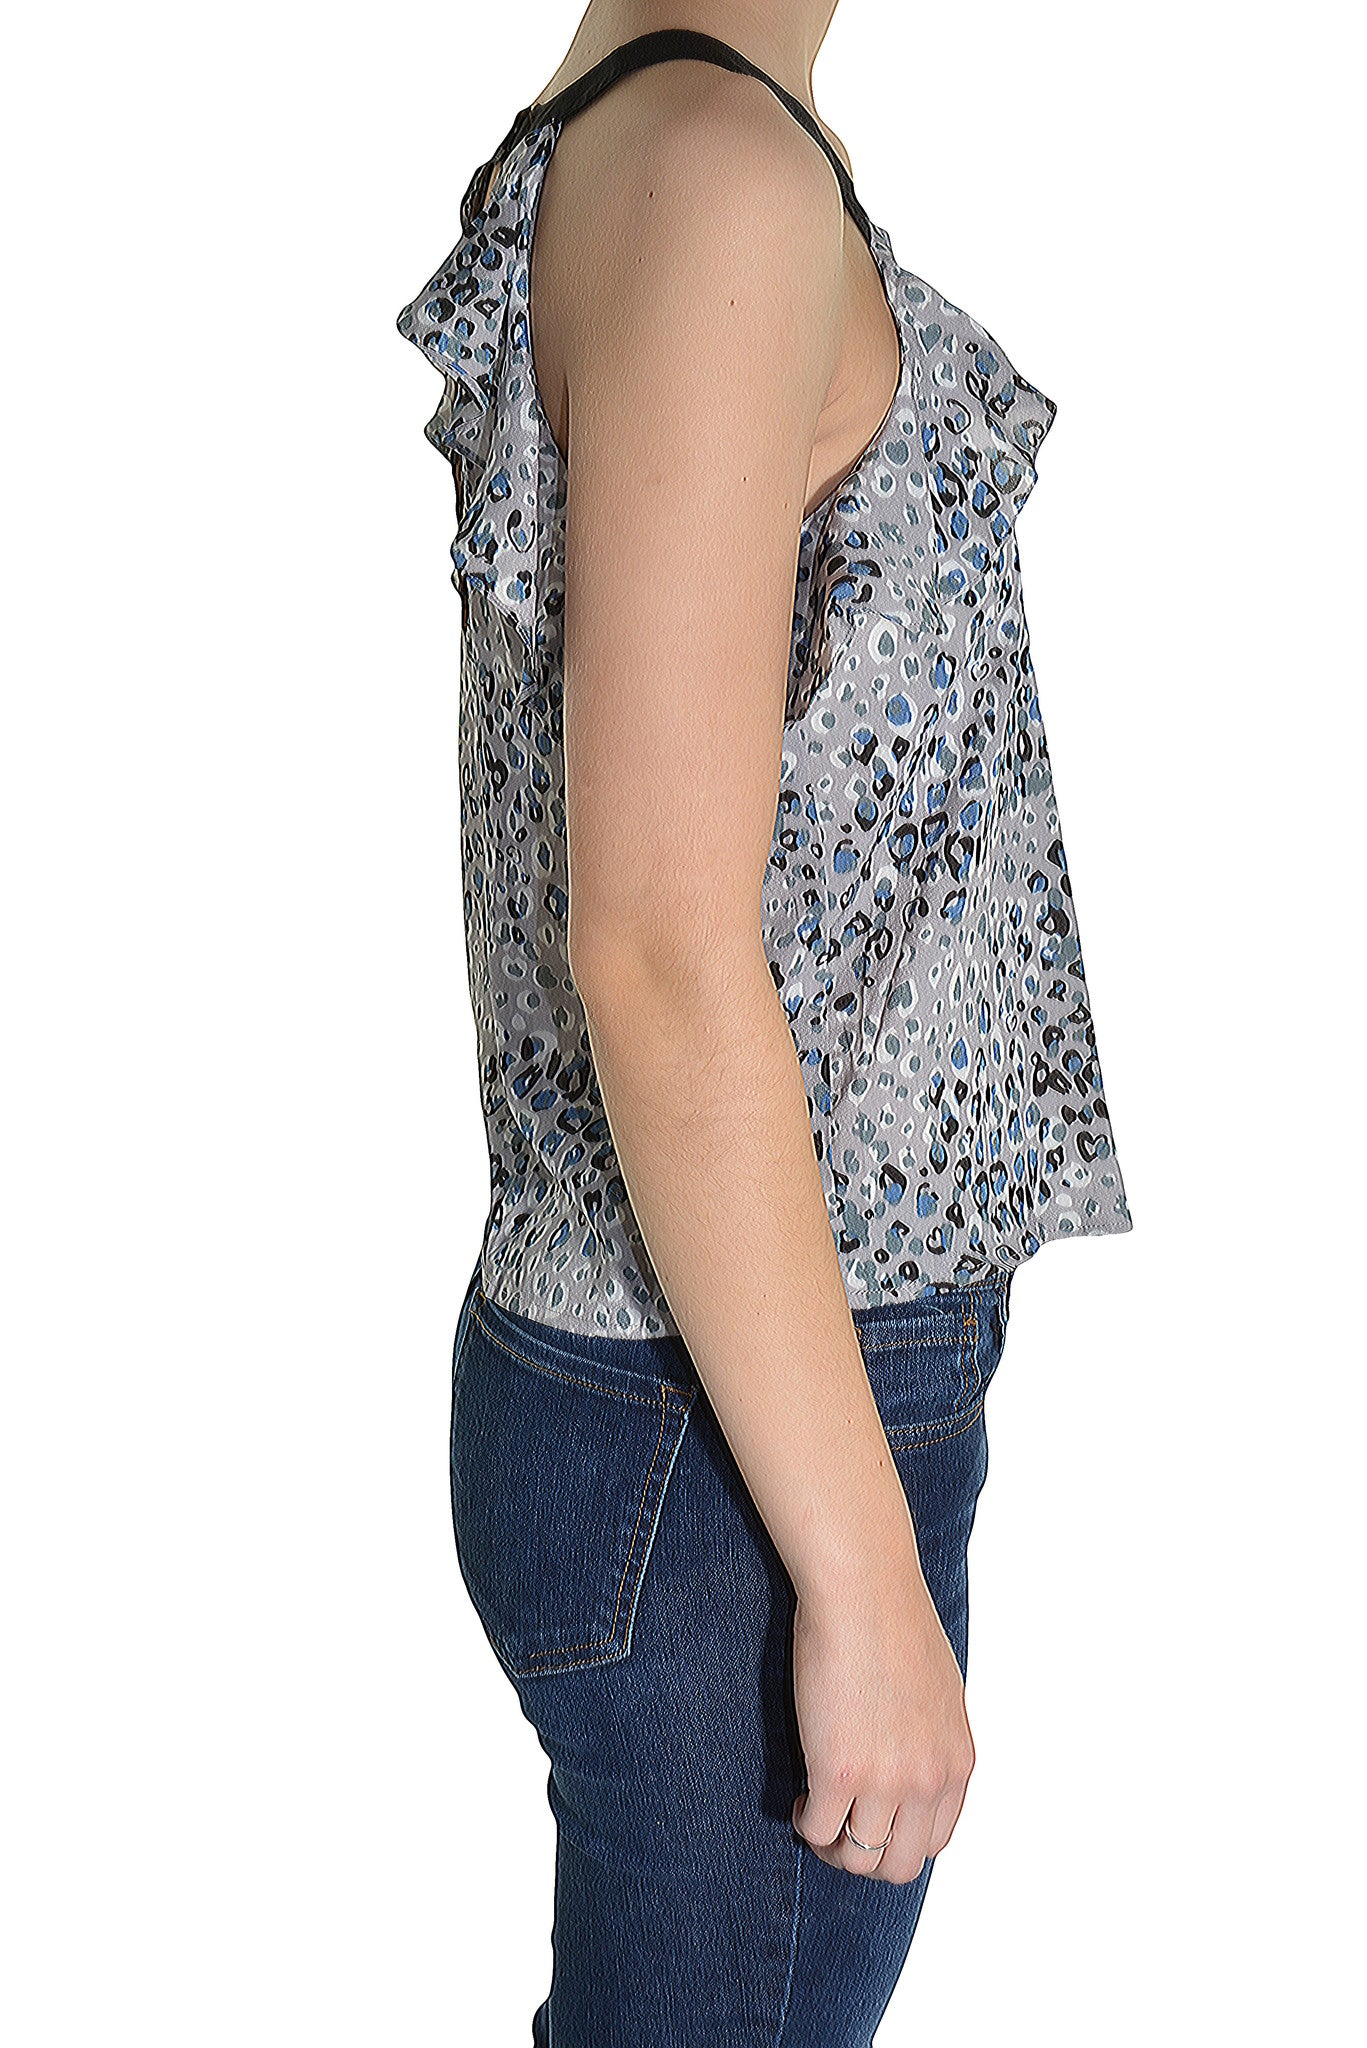 Naked Zebra Silky Ruffle Tank Top Shirt (Gray)